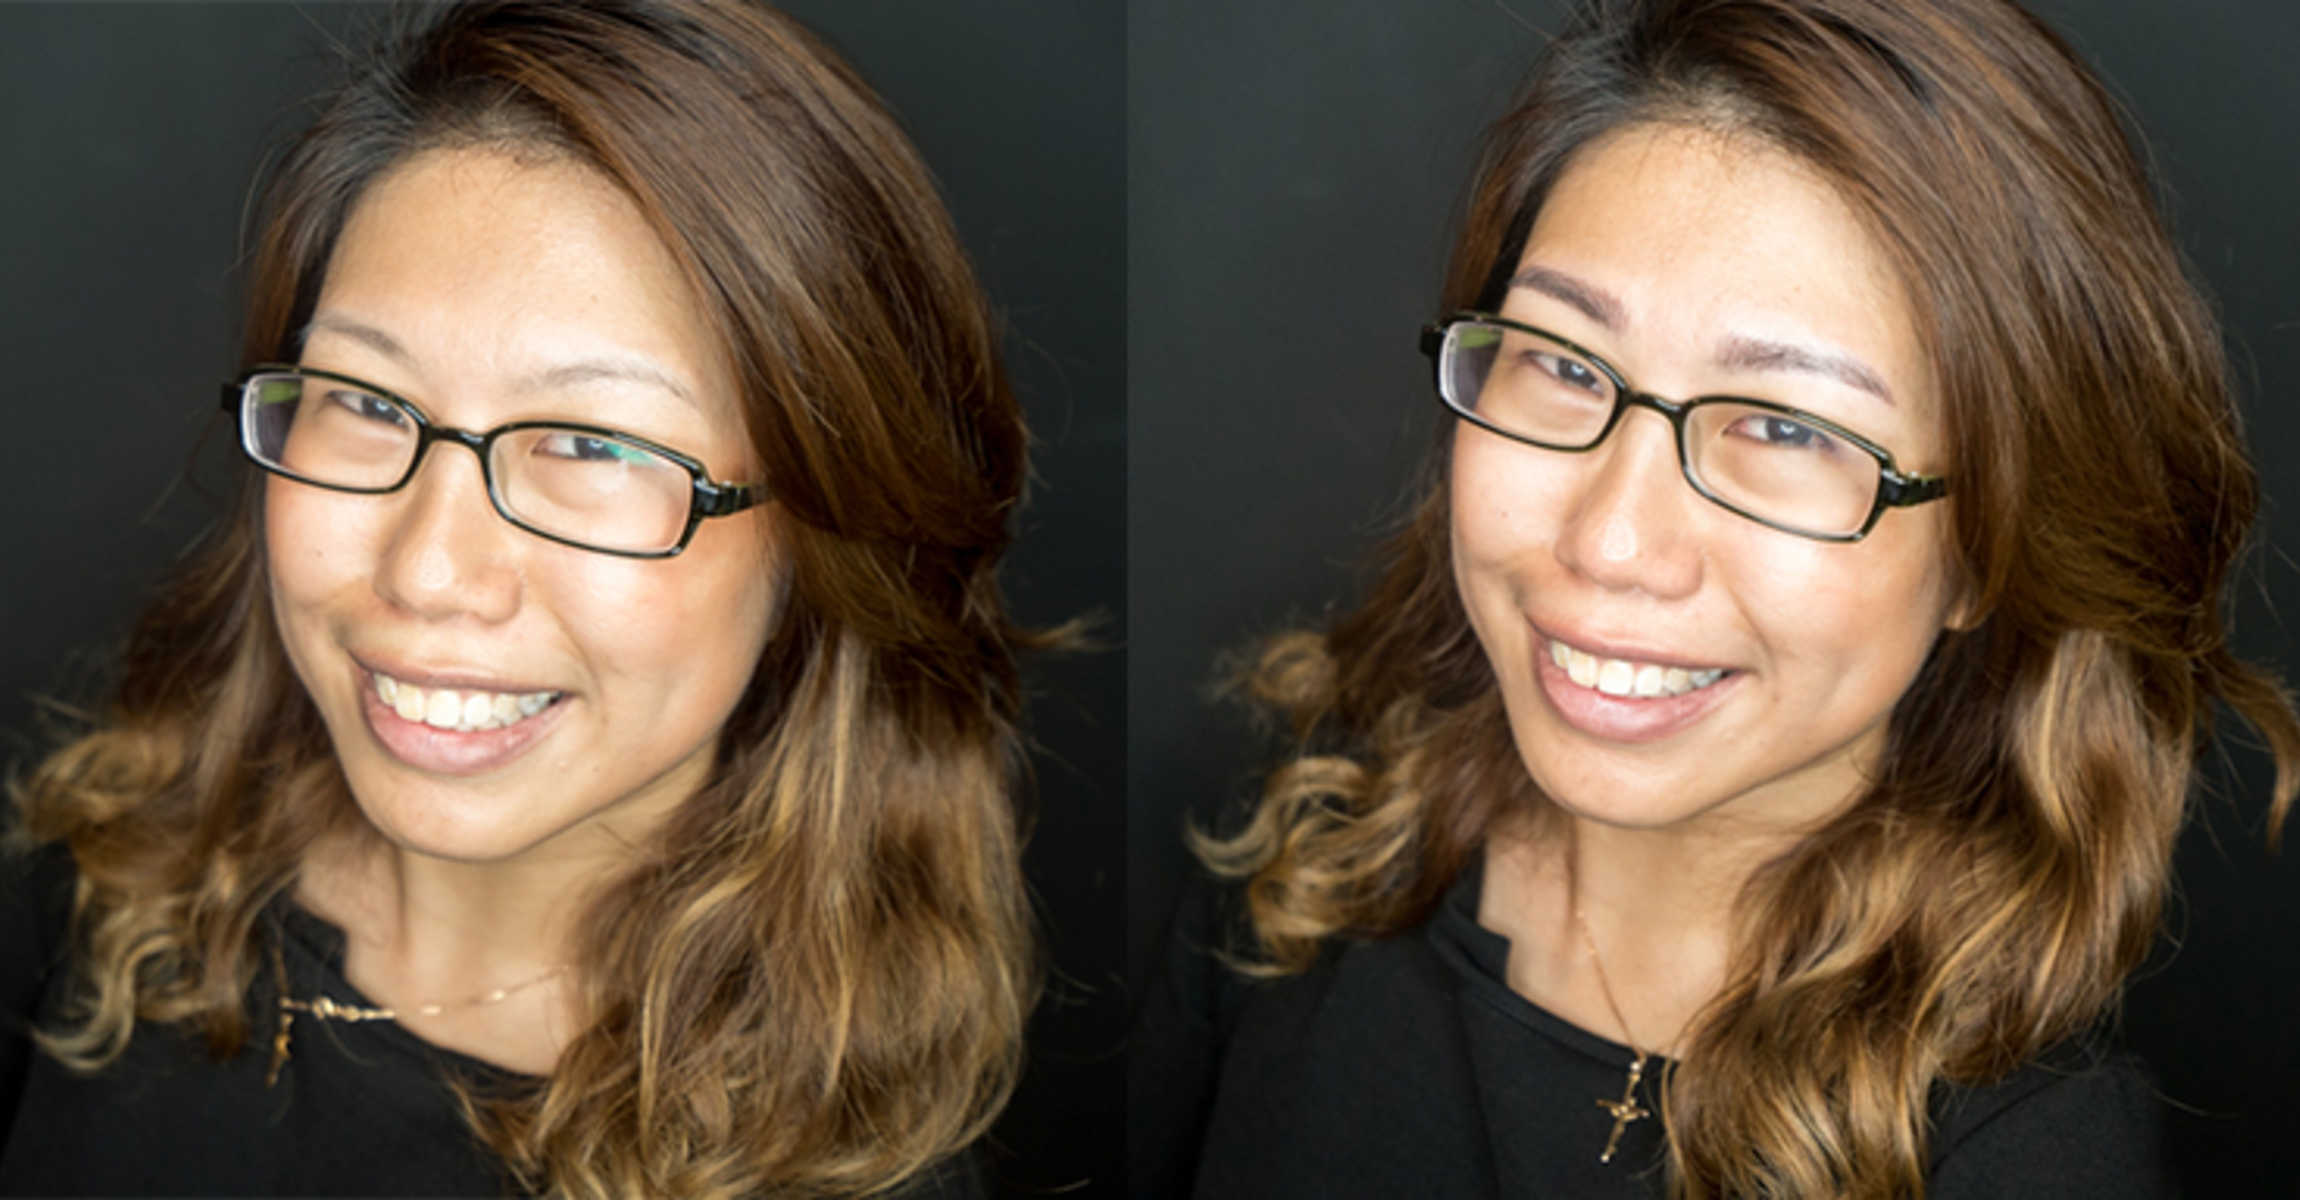 Korean Semi Permanent Eyebrow Makeup Did NOT Last for Agent G The First Time